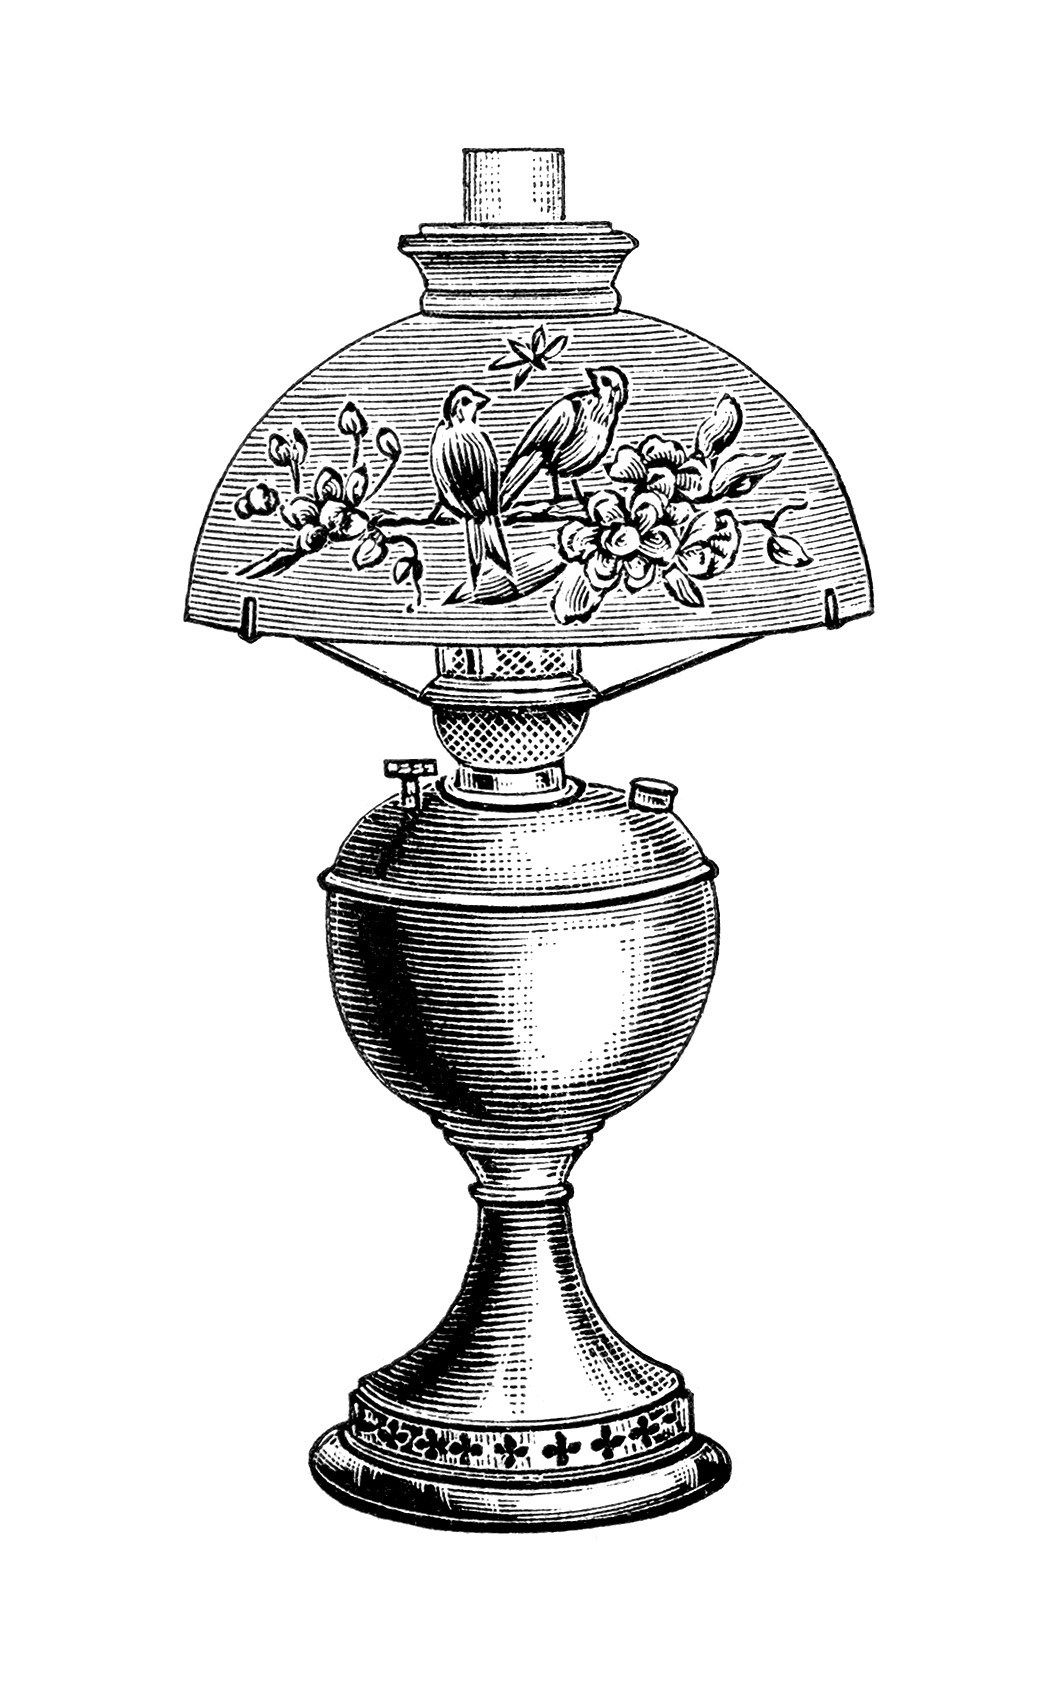 Table Lamp Drawing Image Vintage Lamp Clip Art Black And White Clipart Victorian